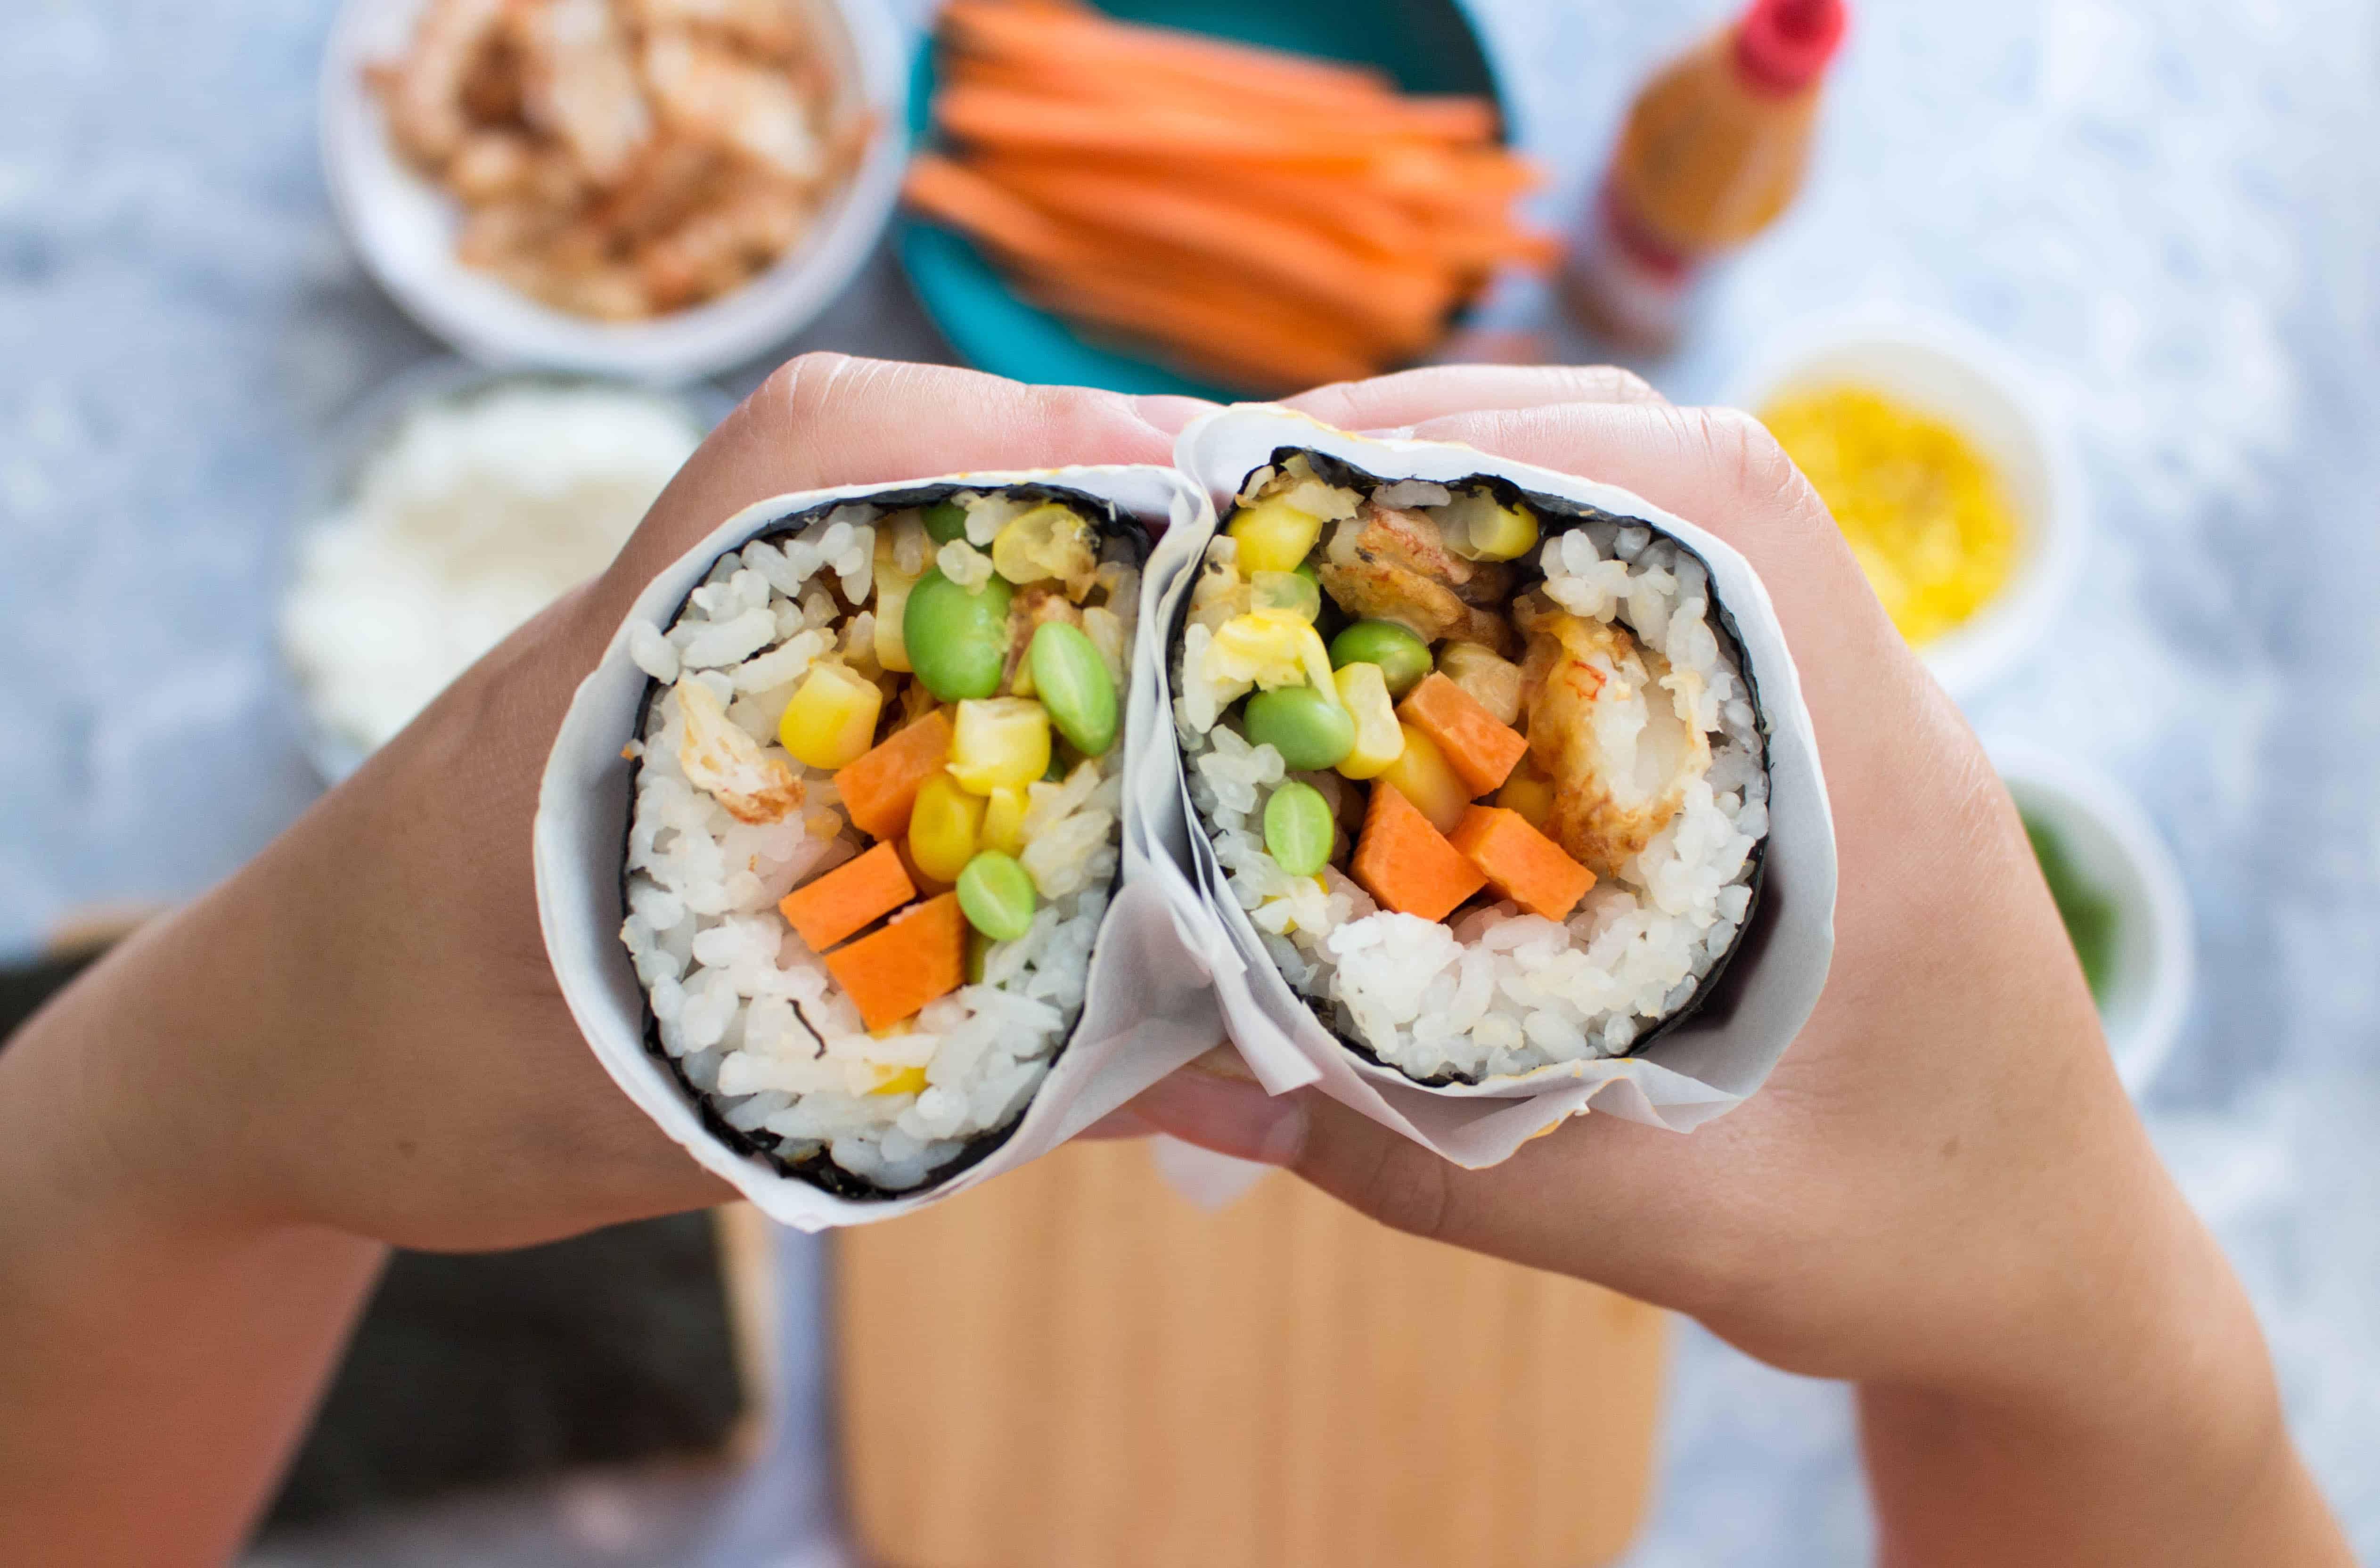 This AirFried Shrimp Tempura Sushi Burrito is the perfect lunch meal prep! Easy to grab and go, heat not required, and healthy, this sushi burrito will be your go-to lunch!